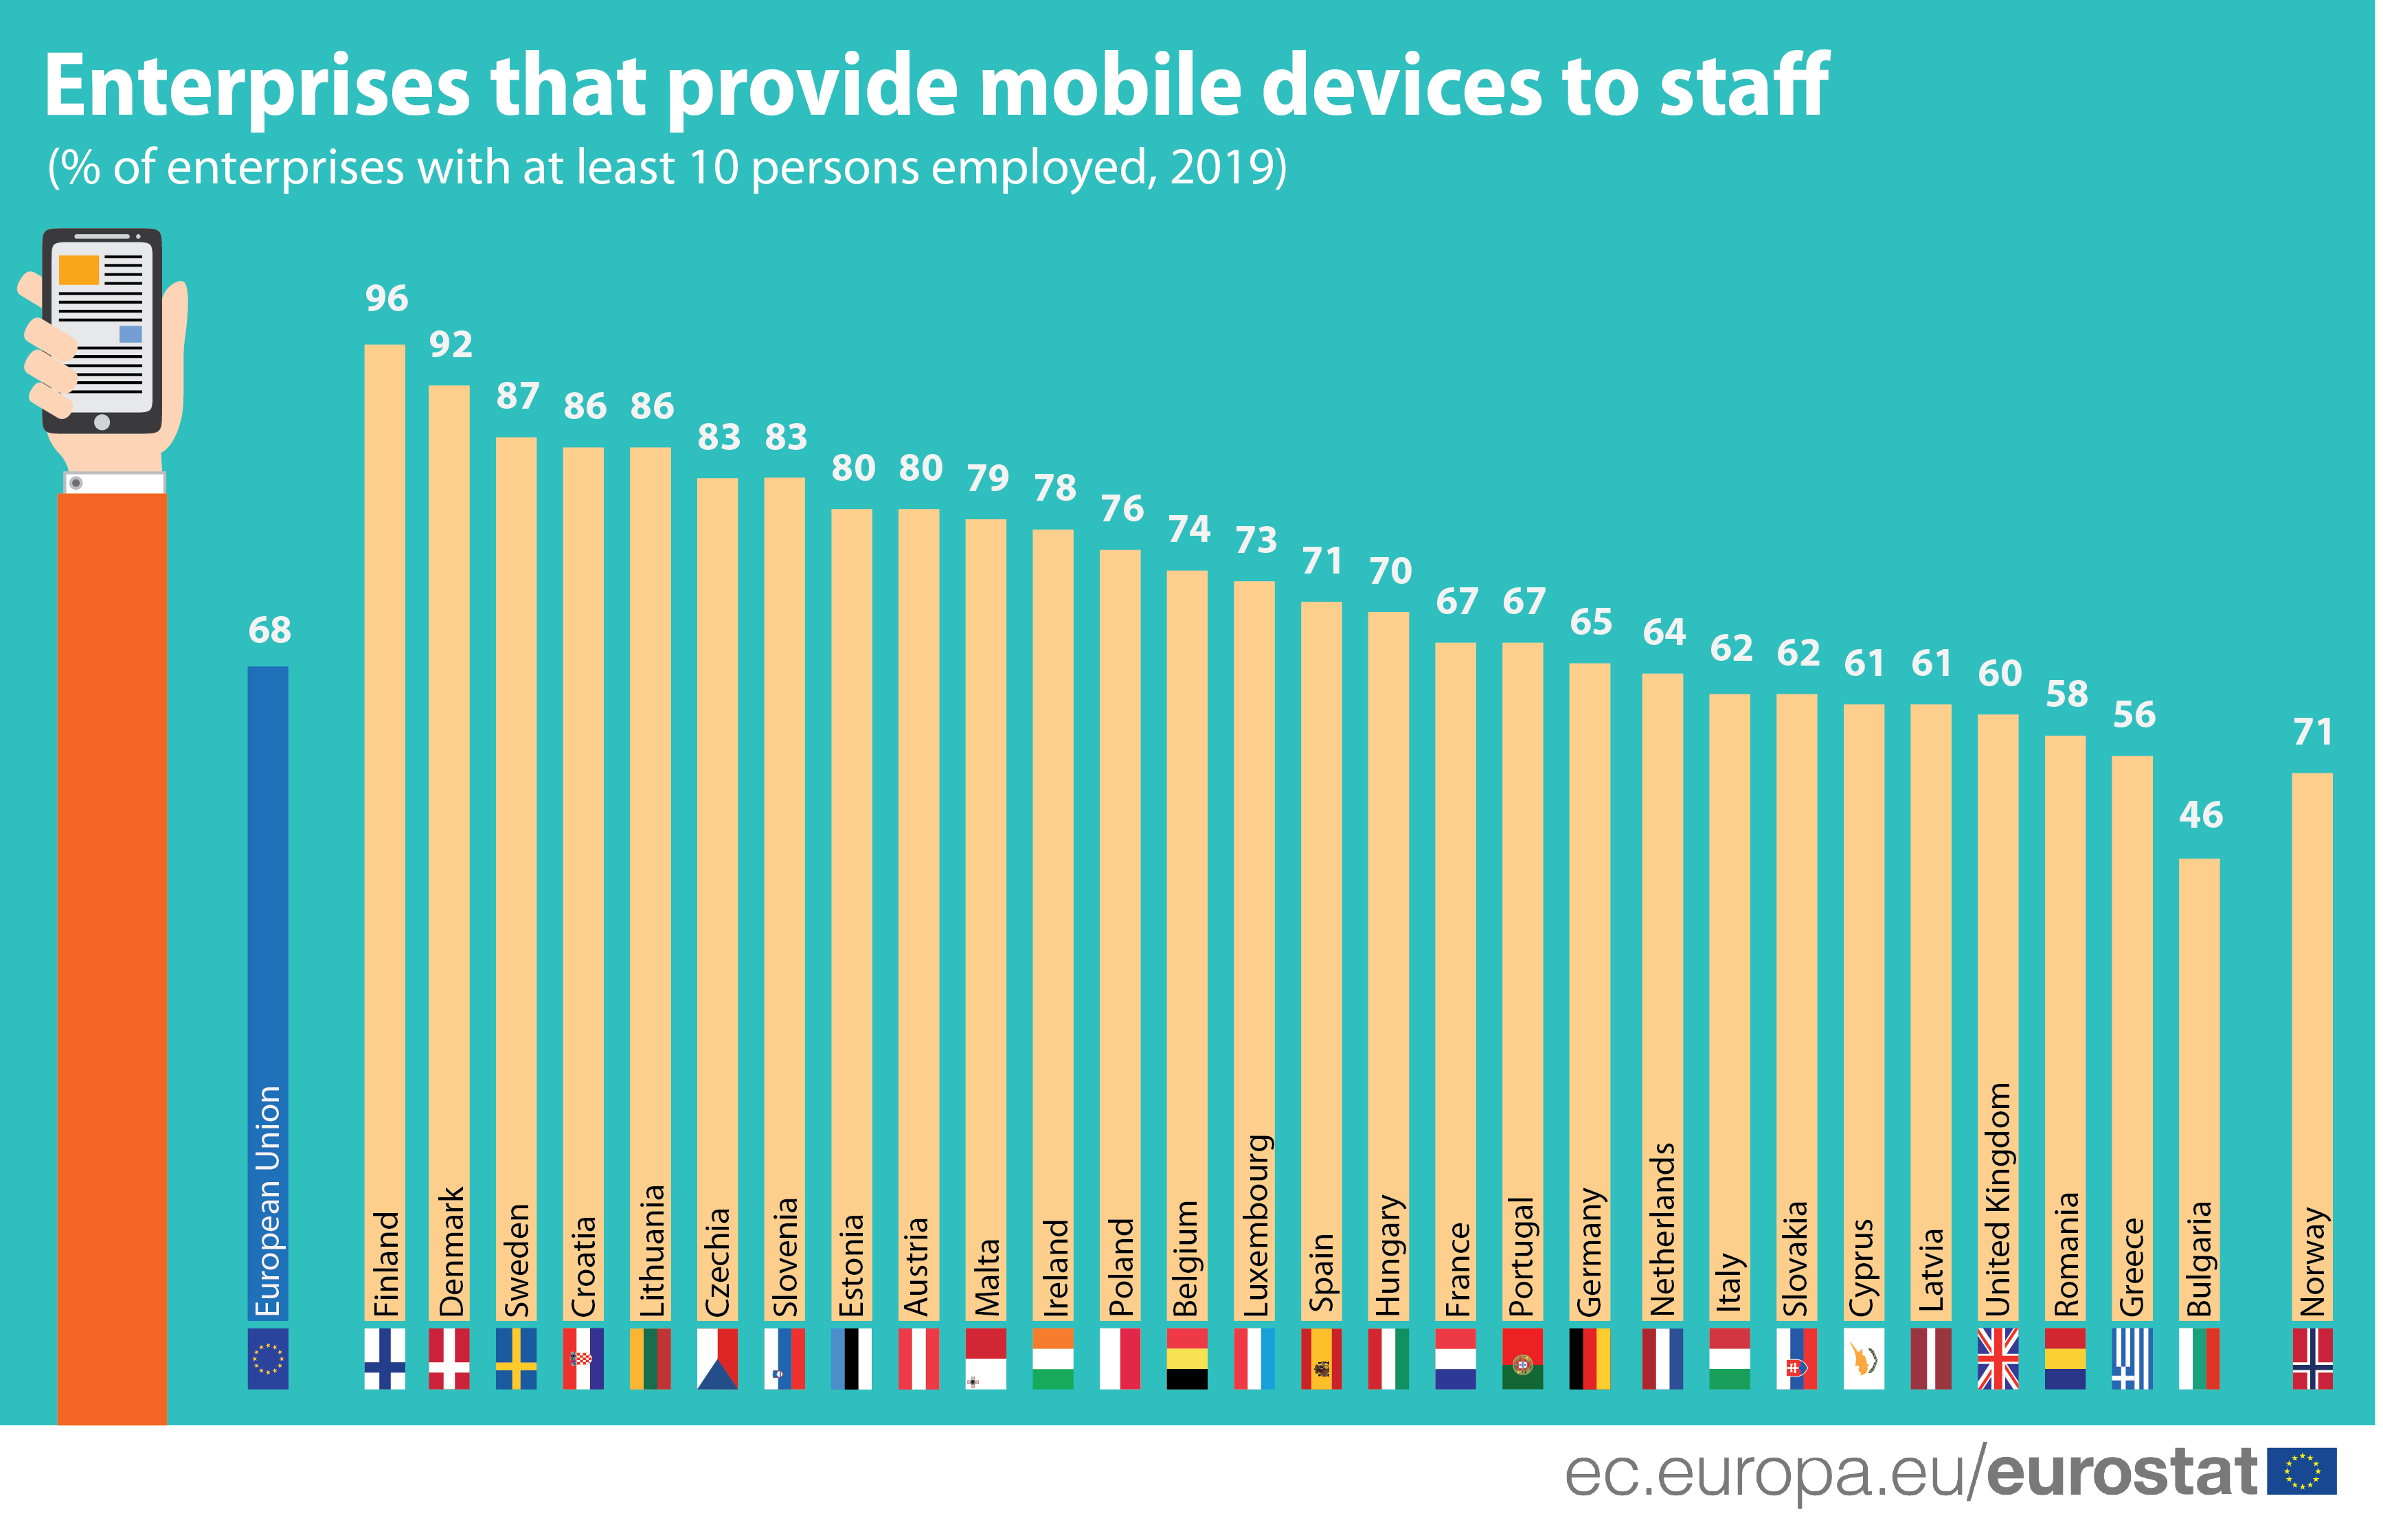 Graph: Enterprises that provide mobile devices to connect to the internet to staff, for business purposes